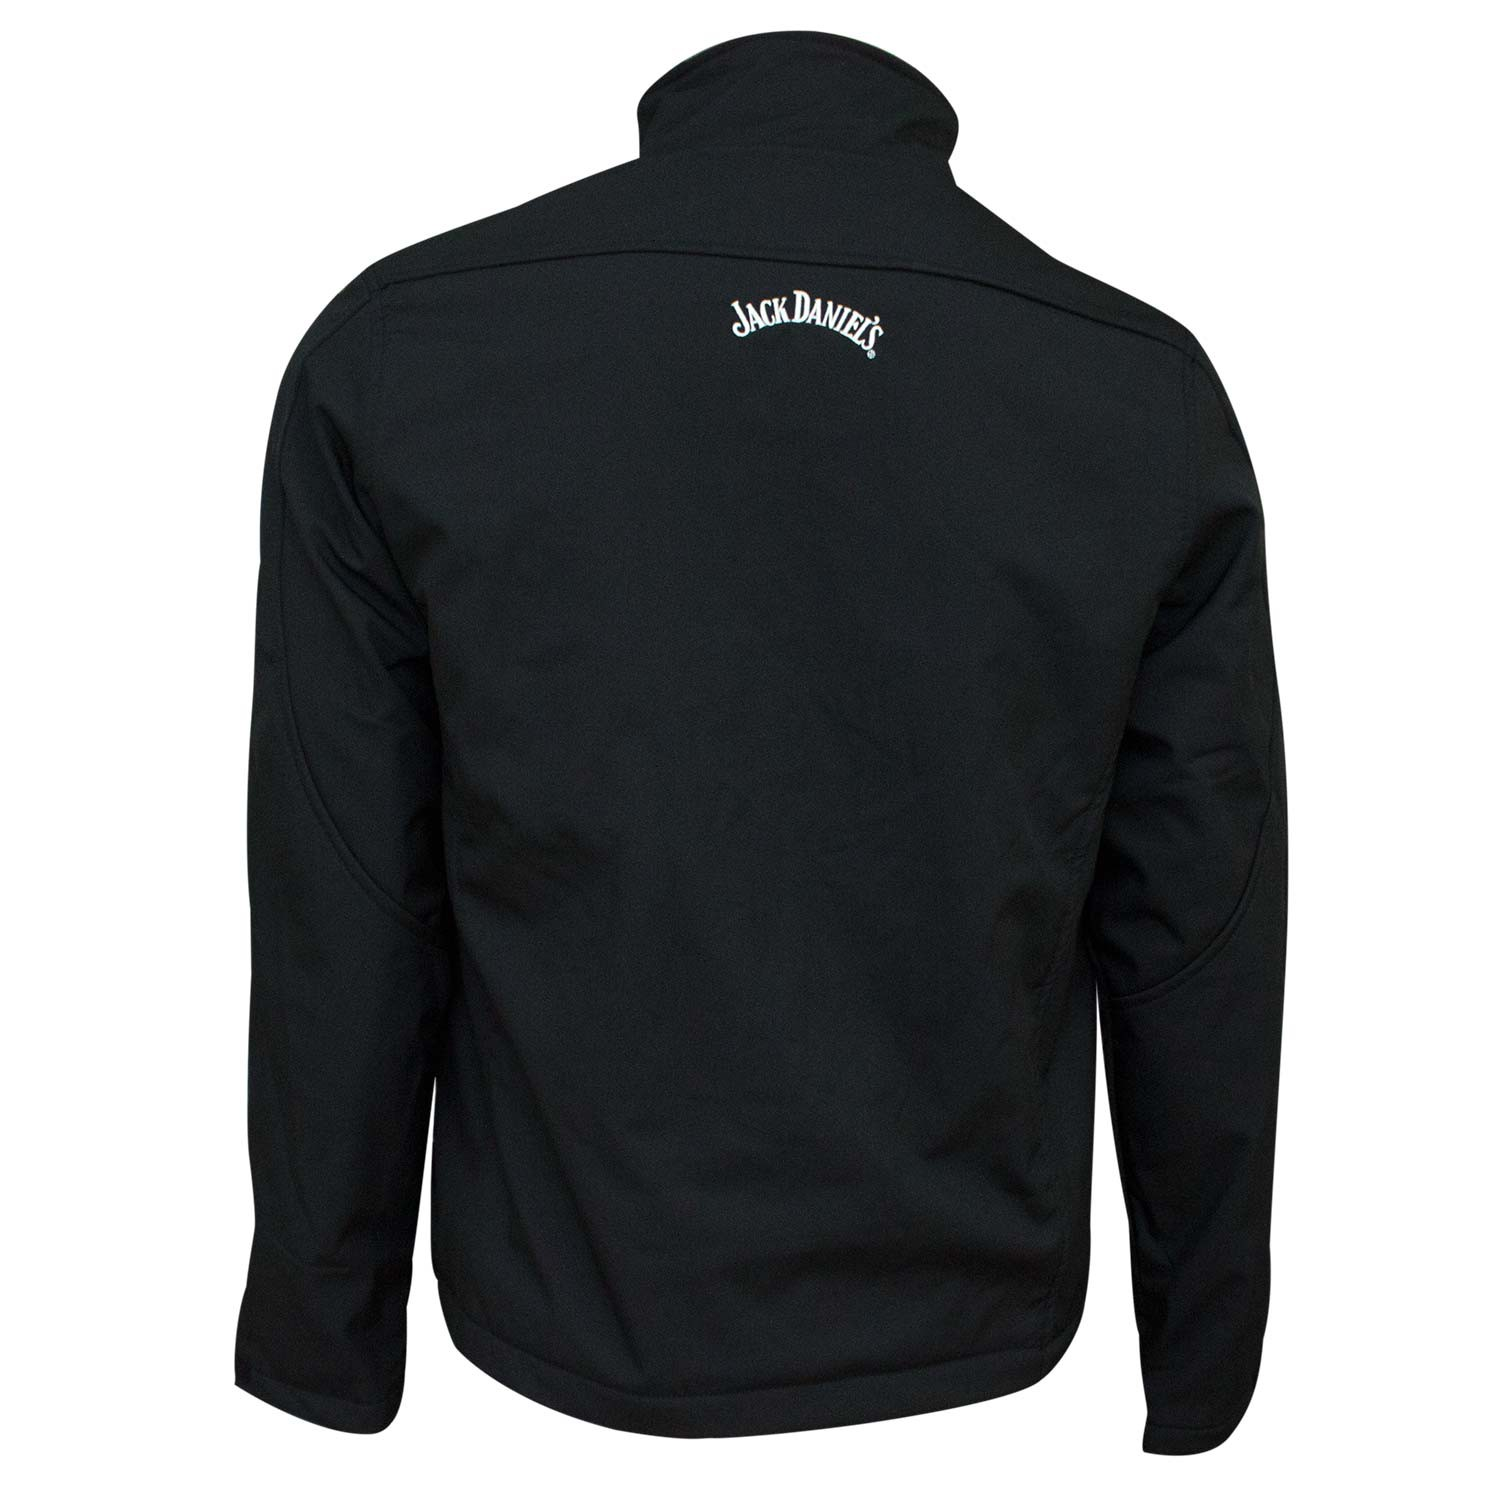 Jack Daniel's Softshell Men's Black Jacket